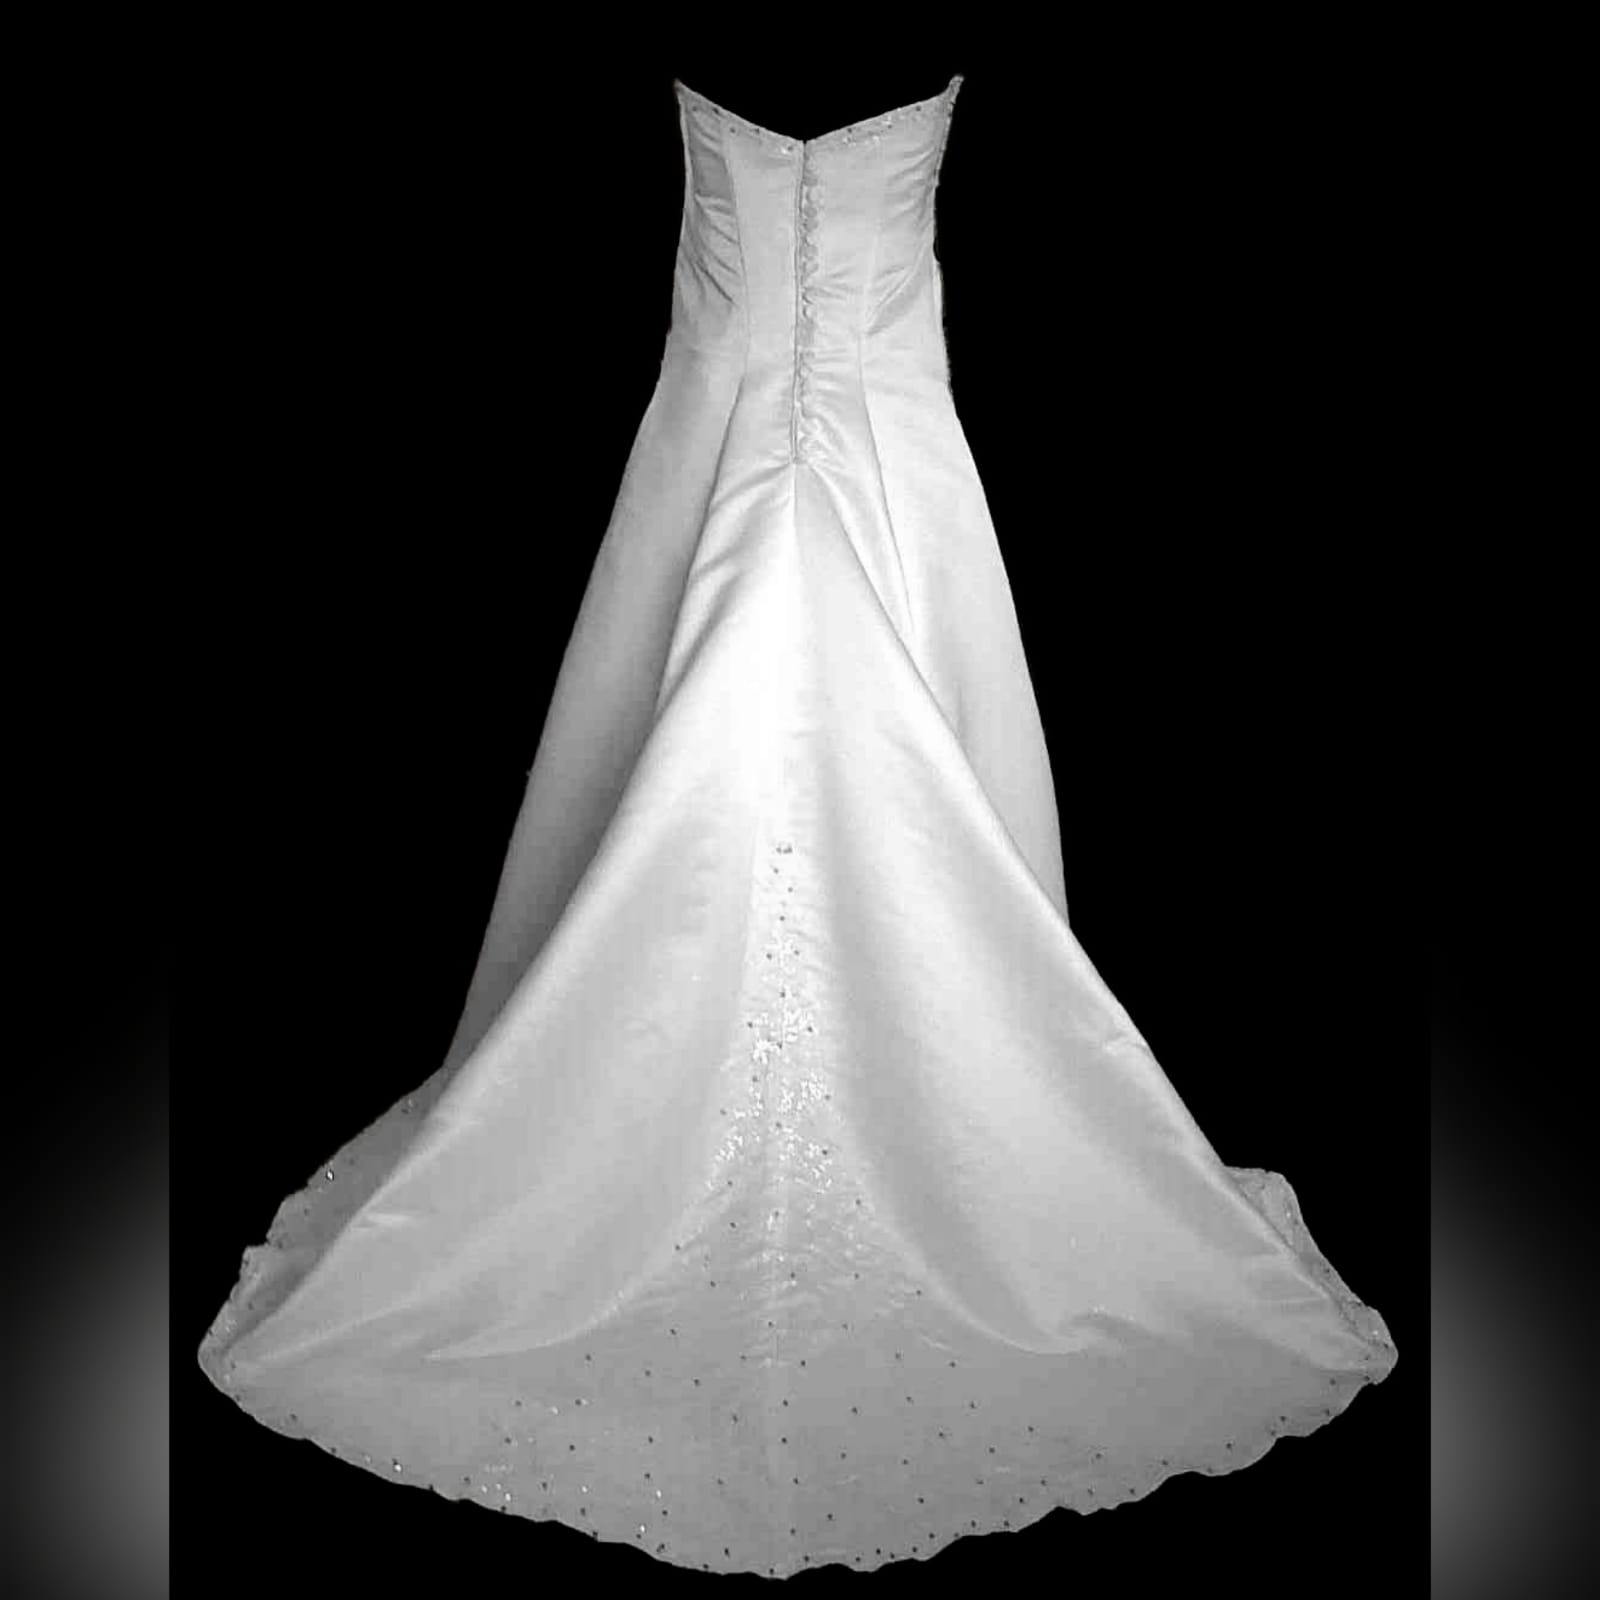 White & glitter ball gown wedding dress 5 white & glitter ball gown wedding dress. Bodice detailed with silver detail and beads. Falling to the ballgown. Back detailed with silver covered buttons.